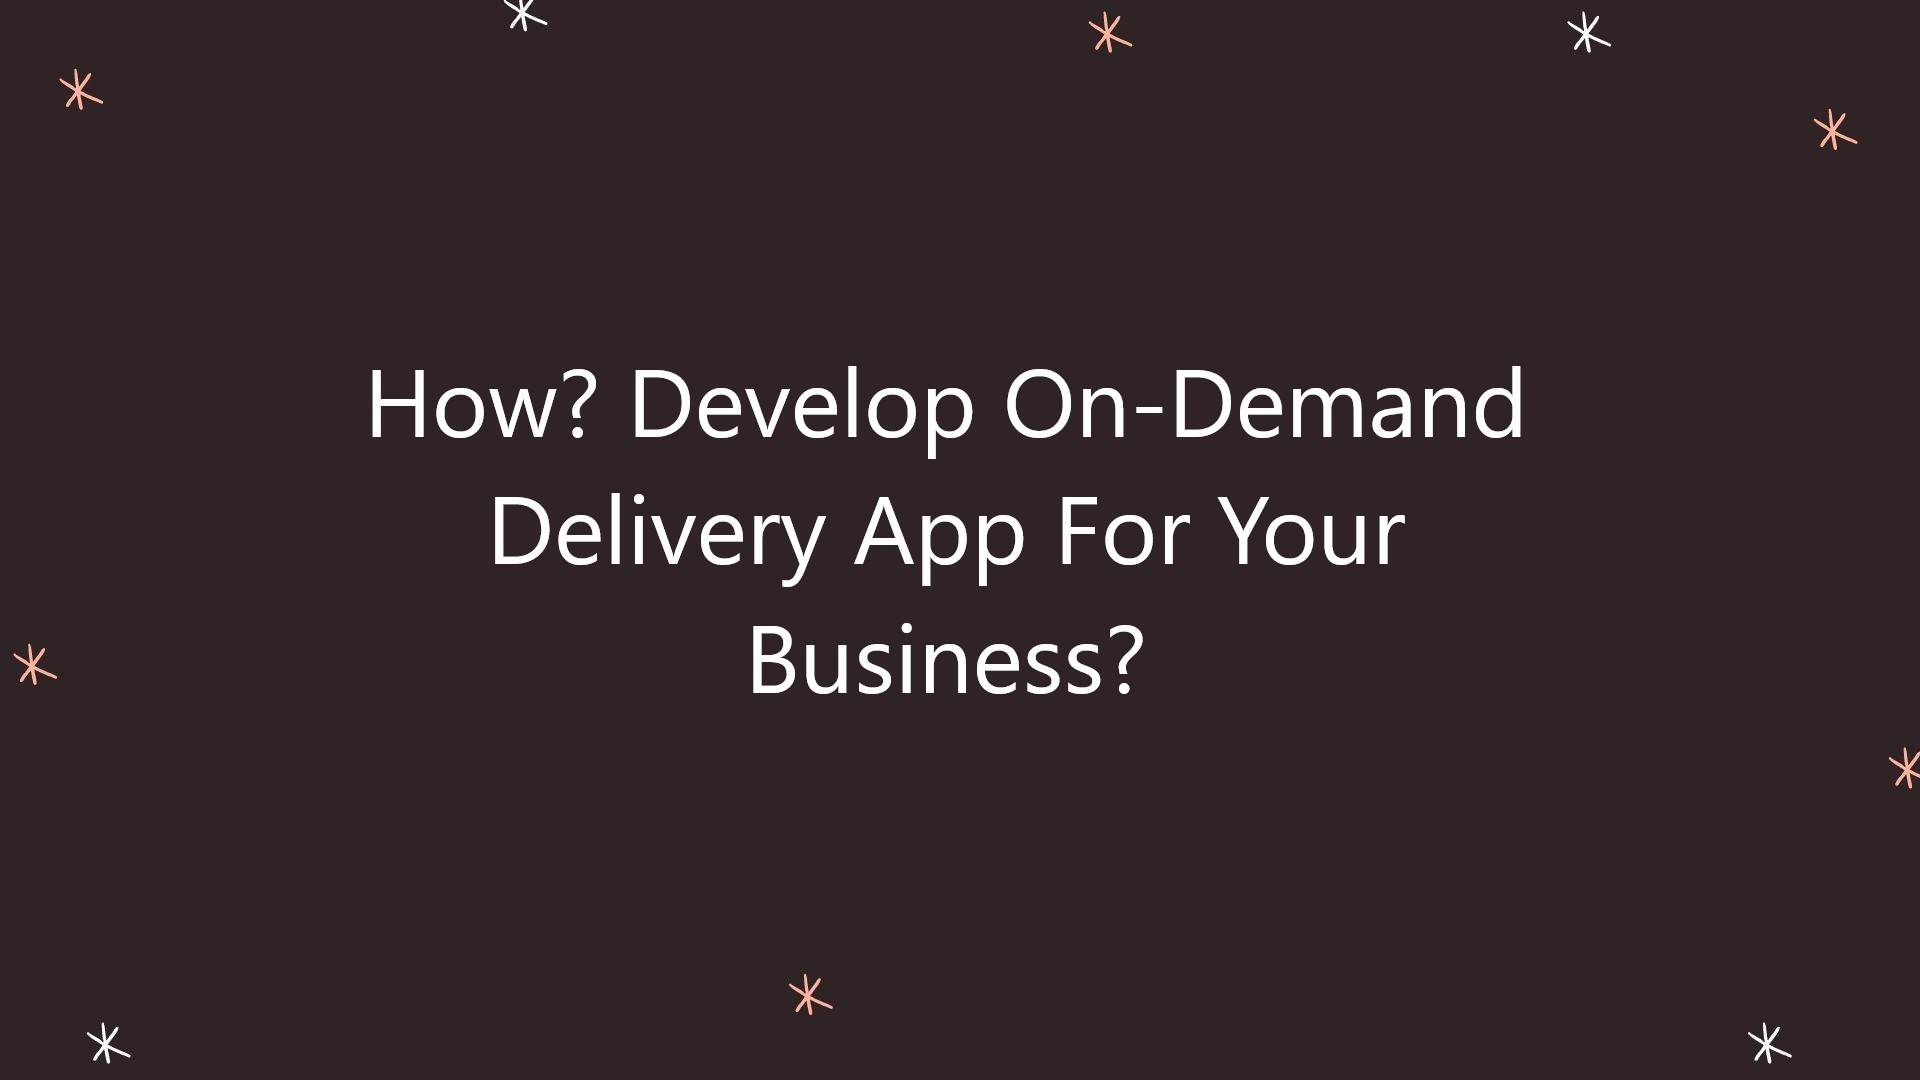 How? Develop On-Demand Delivery App For Your Business?